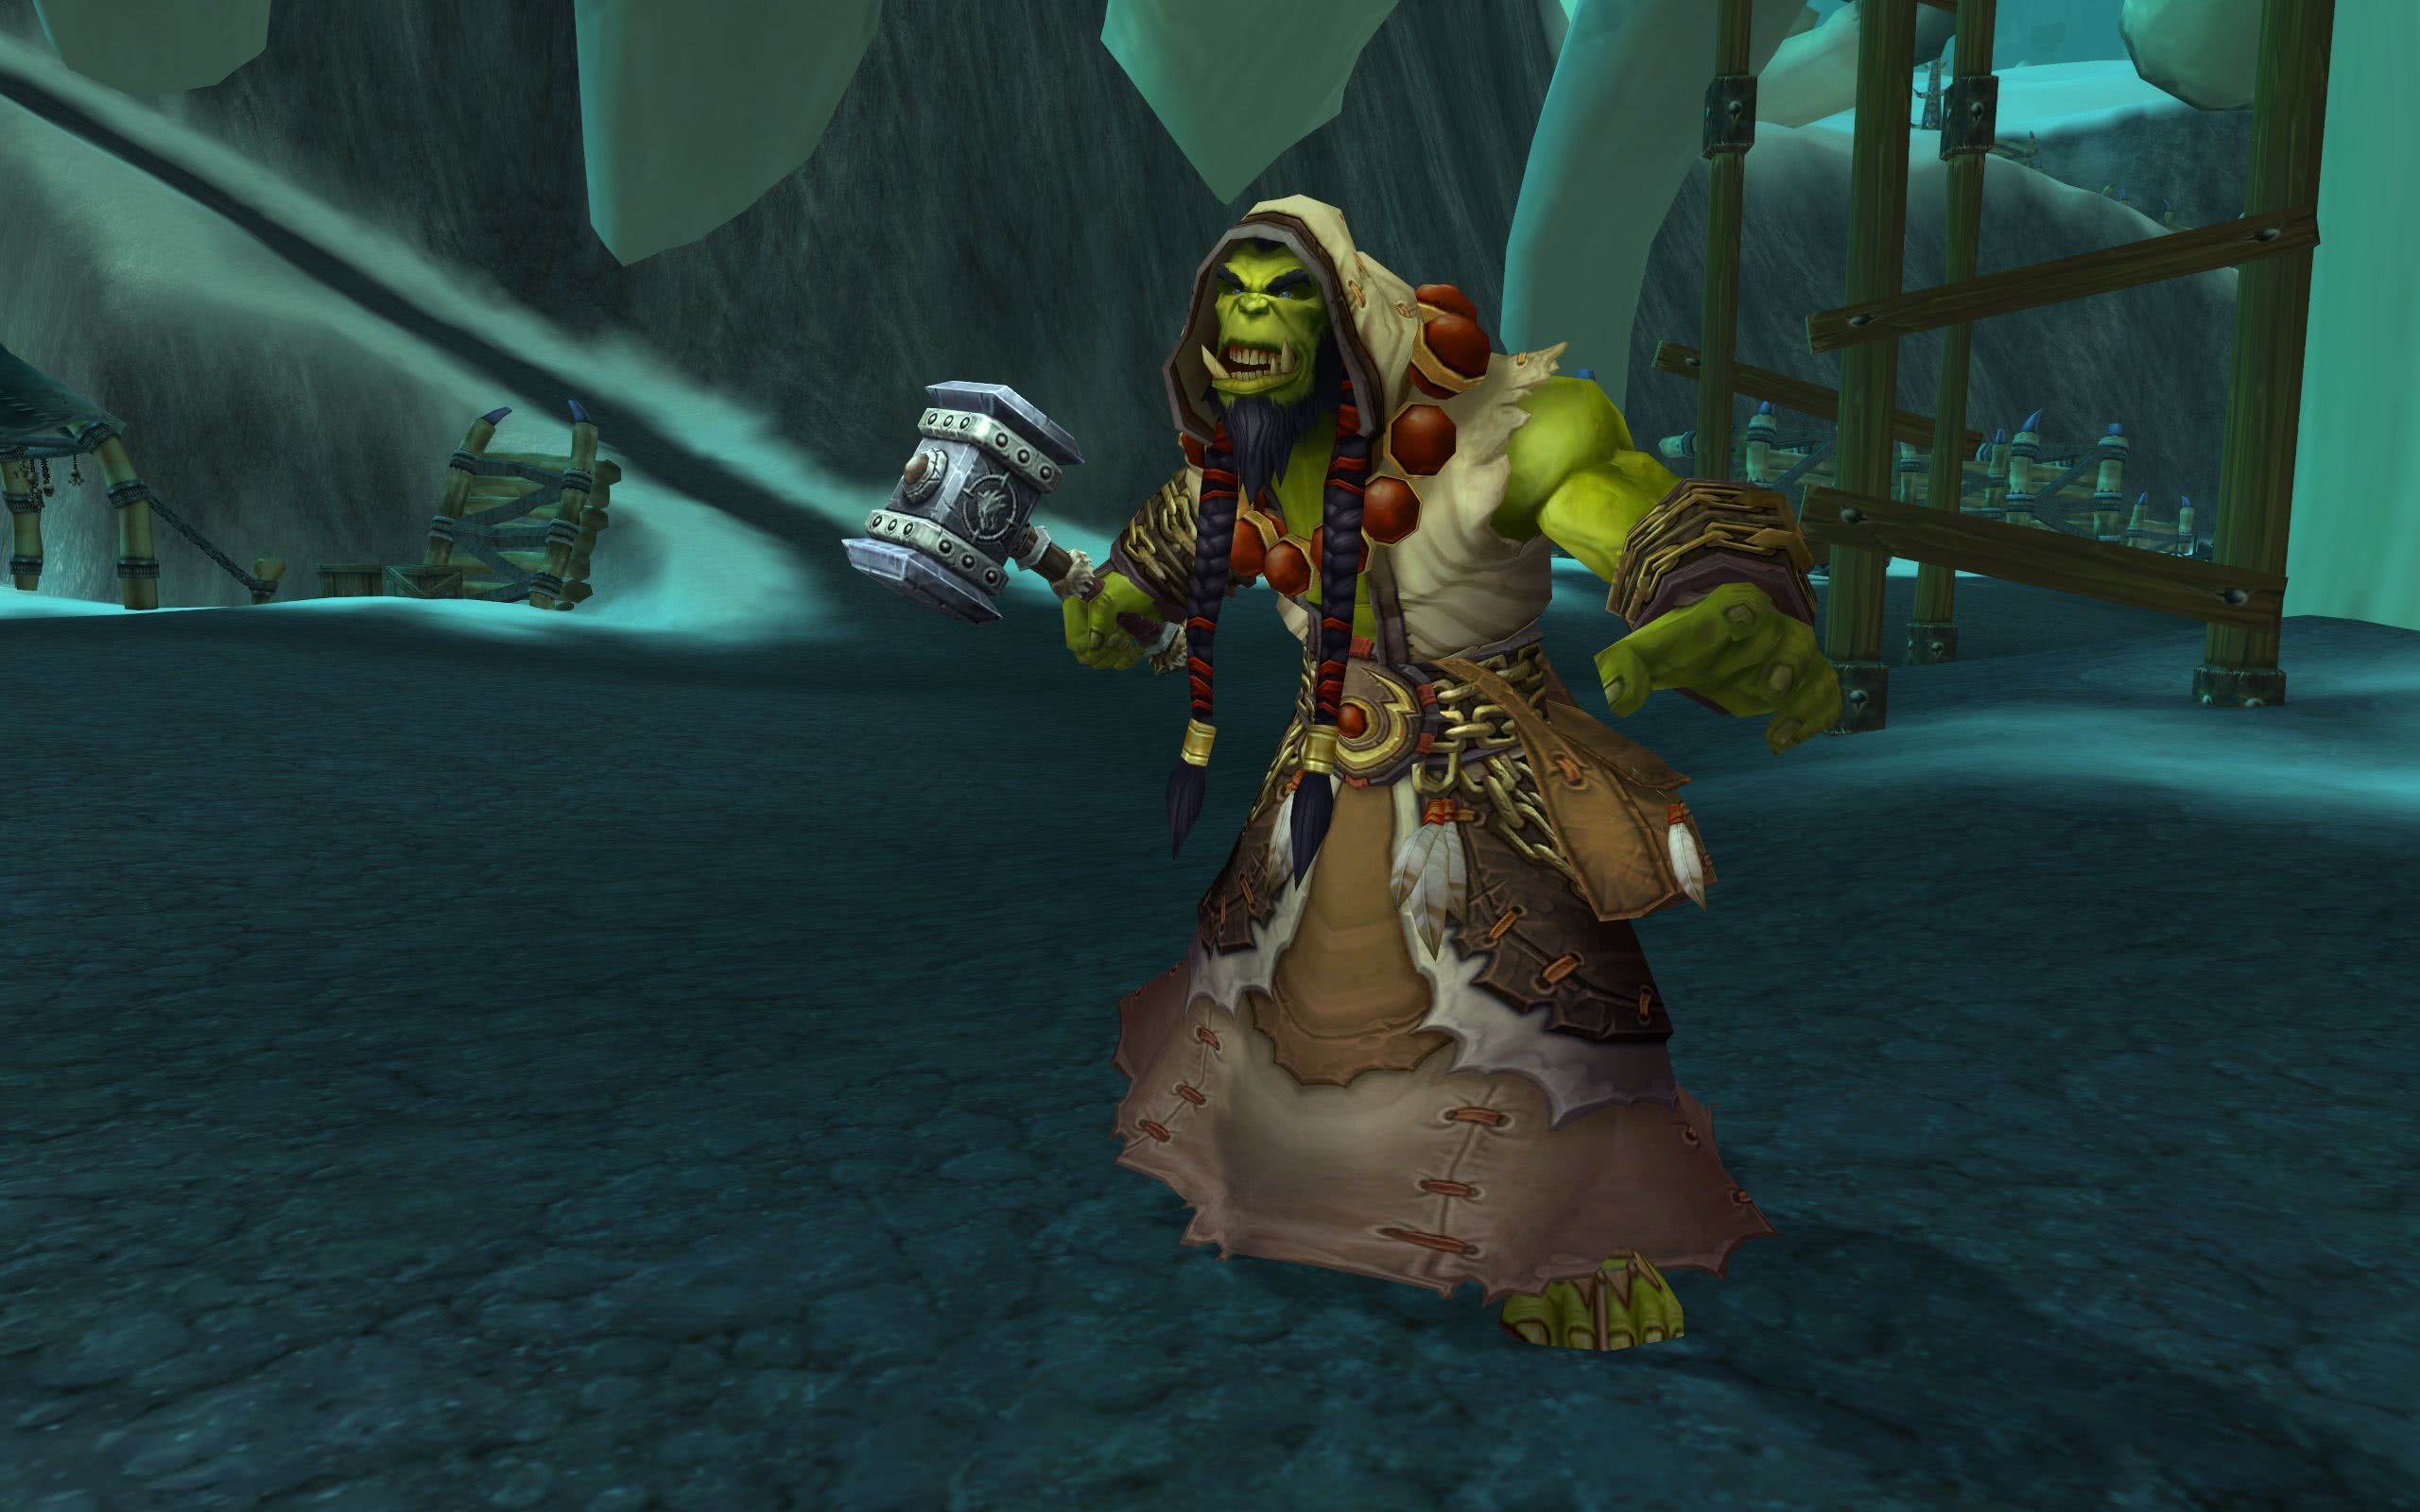 World of warcraft cataclysm orc speach exploited amatuer lovers